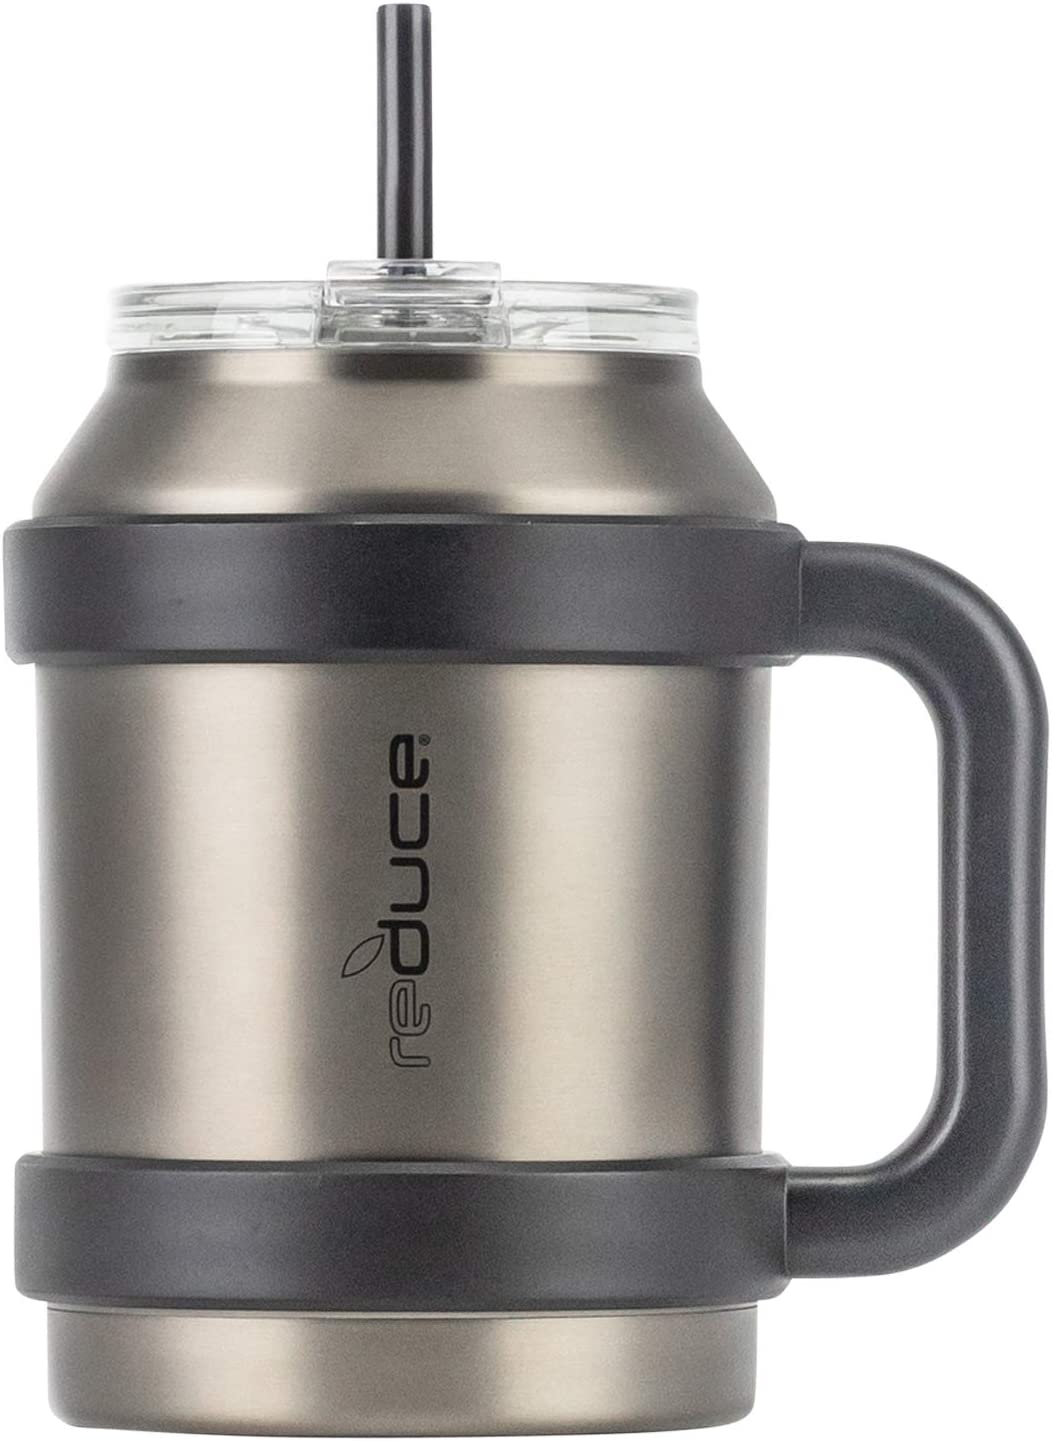 Amazon Com Reduce Tumbler 50 Oz Stainless Steel Insulated Large Mug With Straw Lid And Handle 36 Hours Cold For Cold And Hot Drinks Sweat Proof Body Dishwasher Safe Charcoal Kitchen Dining